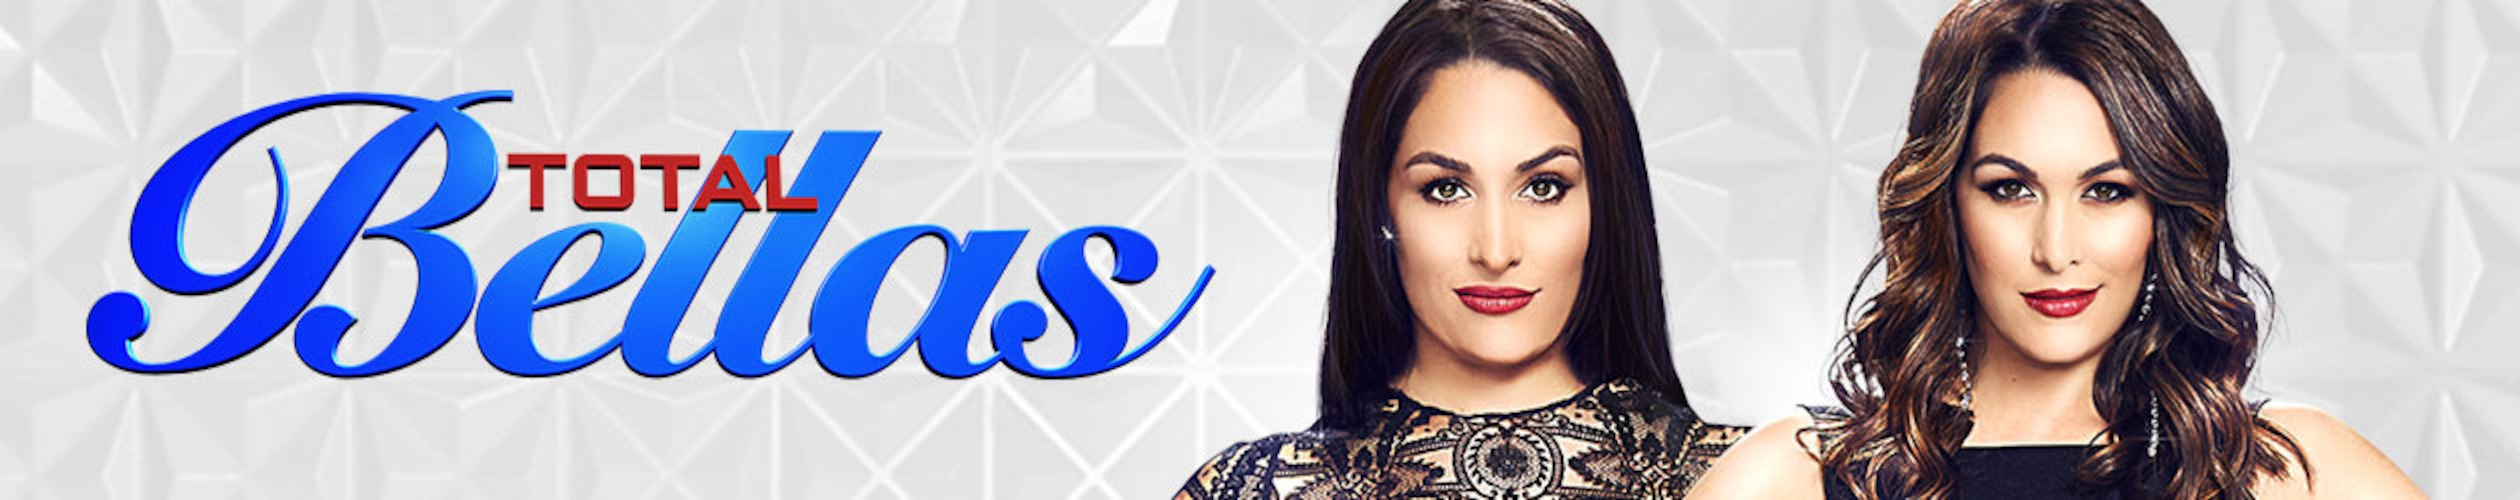 Total Bellas Season 3 Tune-In Banner